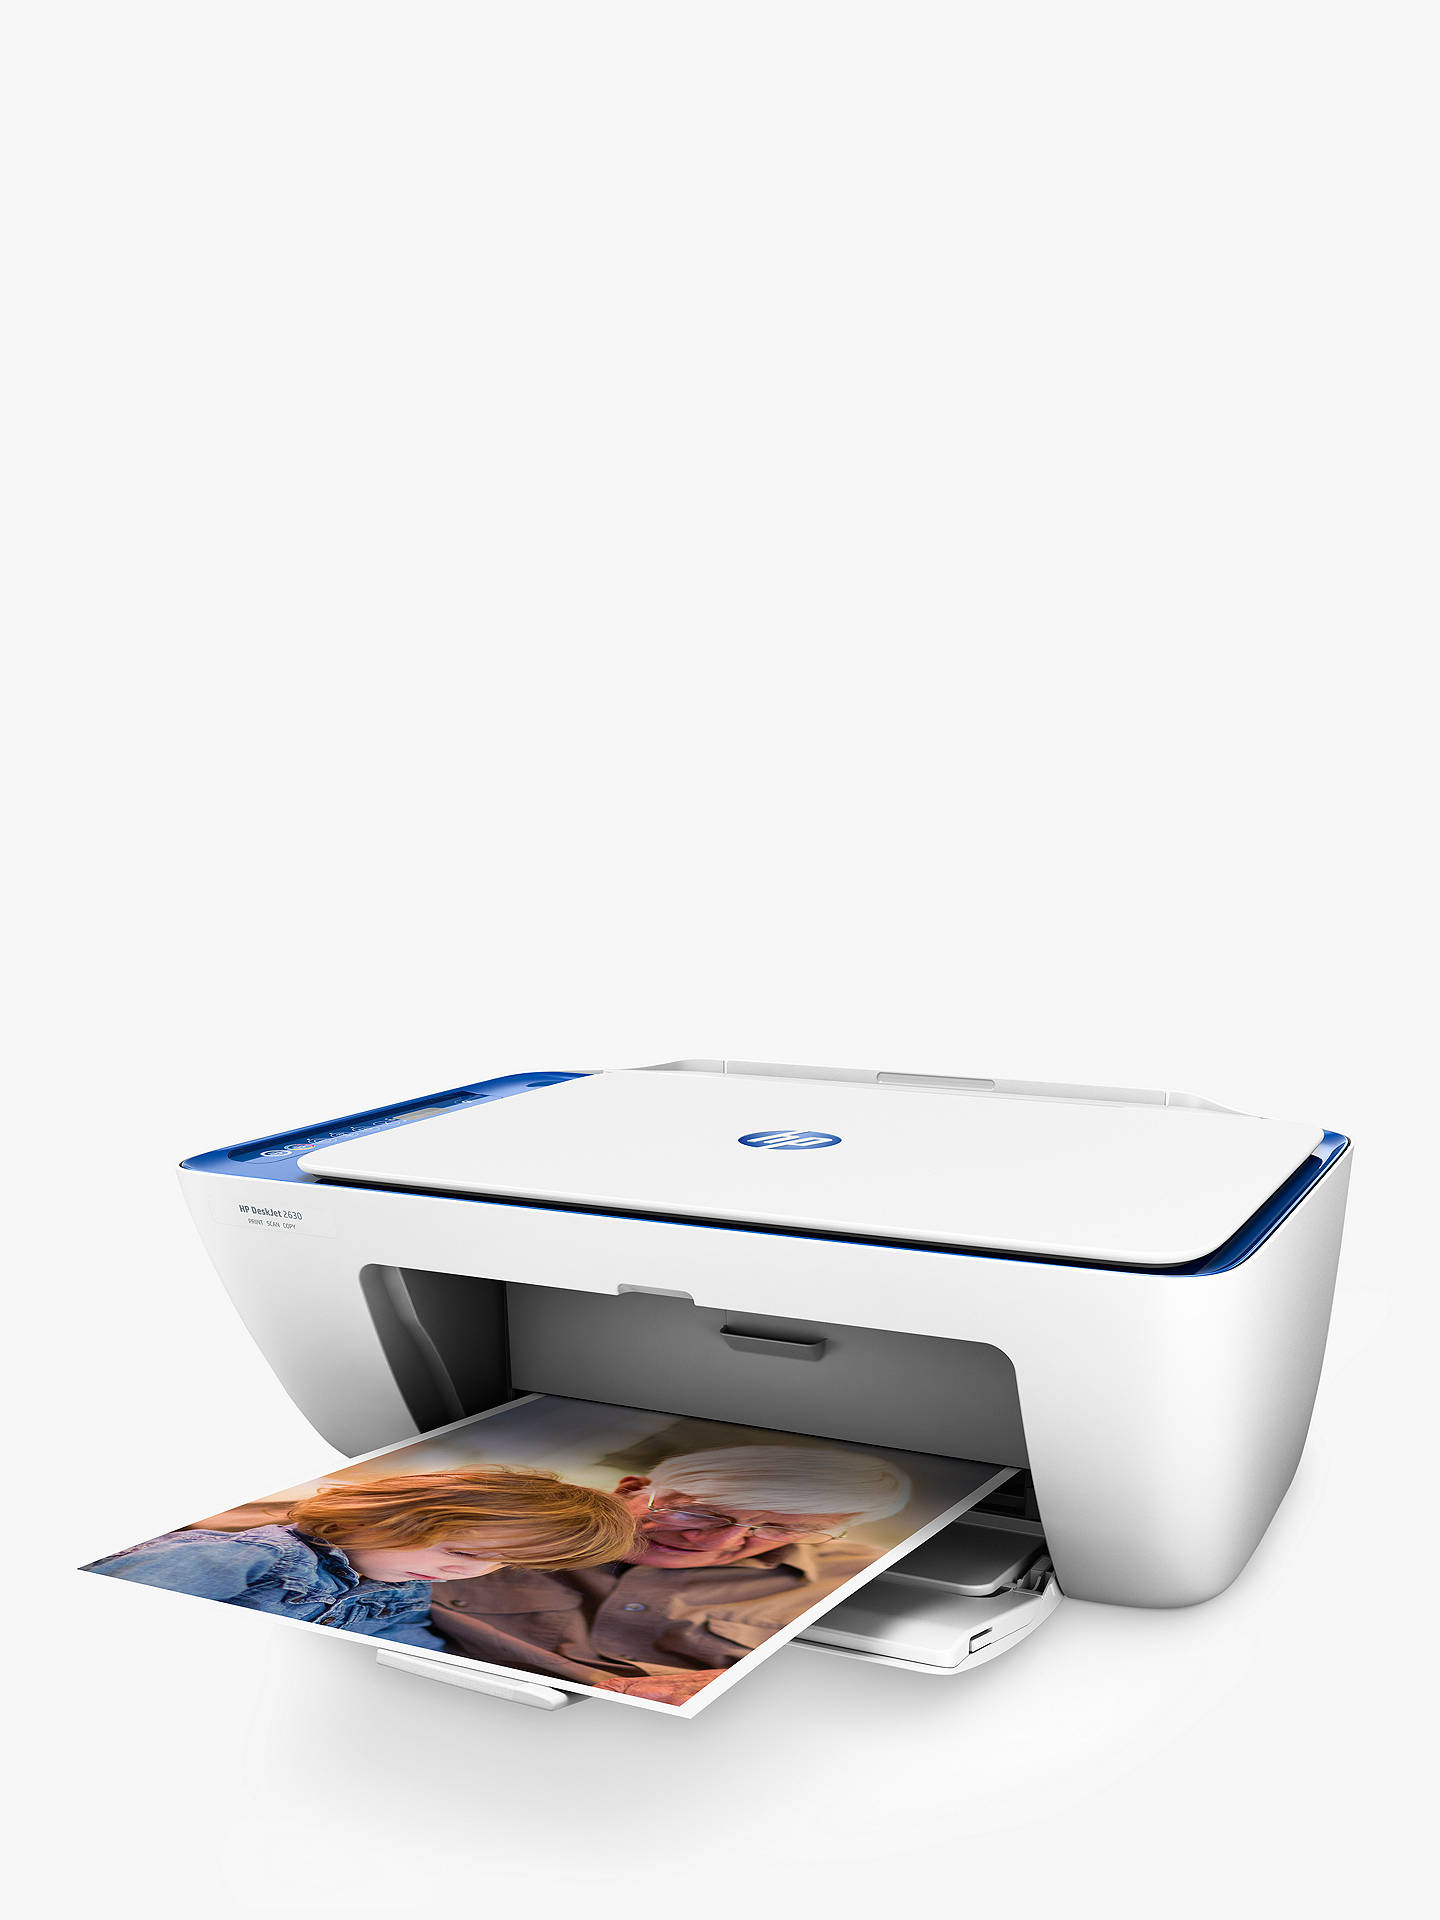 HP Deskjet 2630 All-in-One Wireless Printer, HP Instant Ink Compatible with  2 Months Trial, White